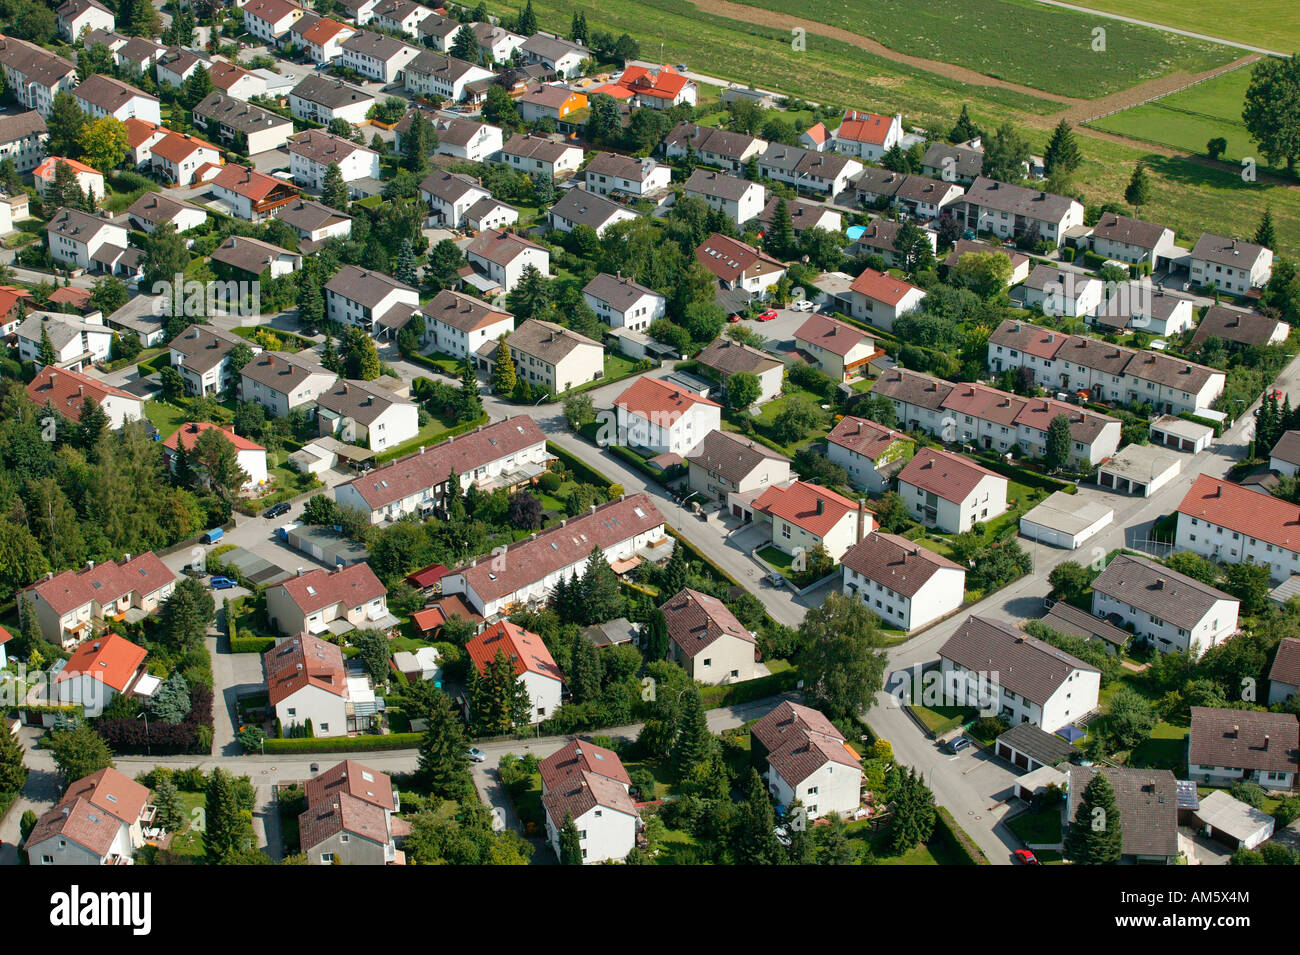 New housing estate, Lower Bavaria, Bavaria, Germany Stock Photo